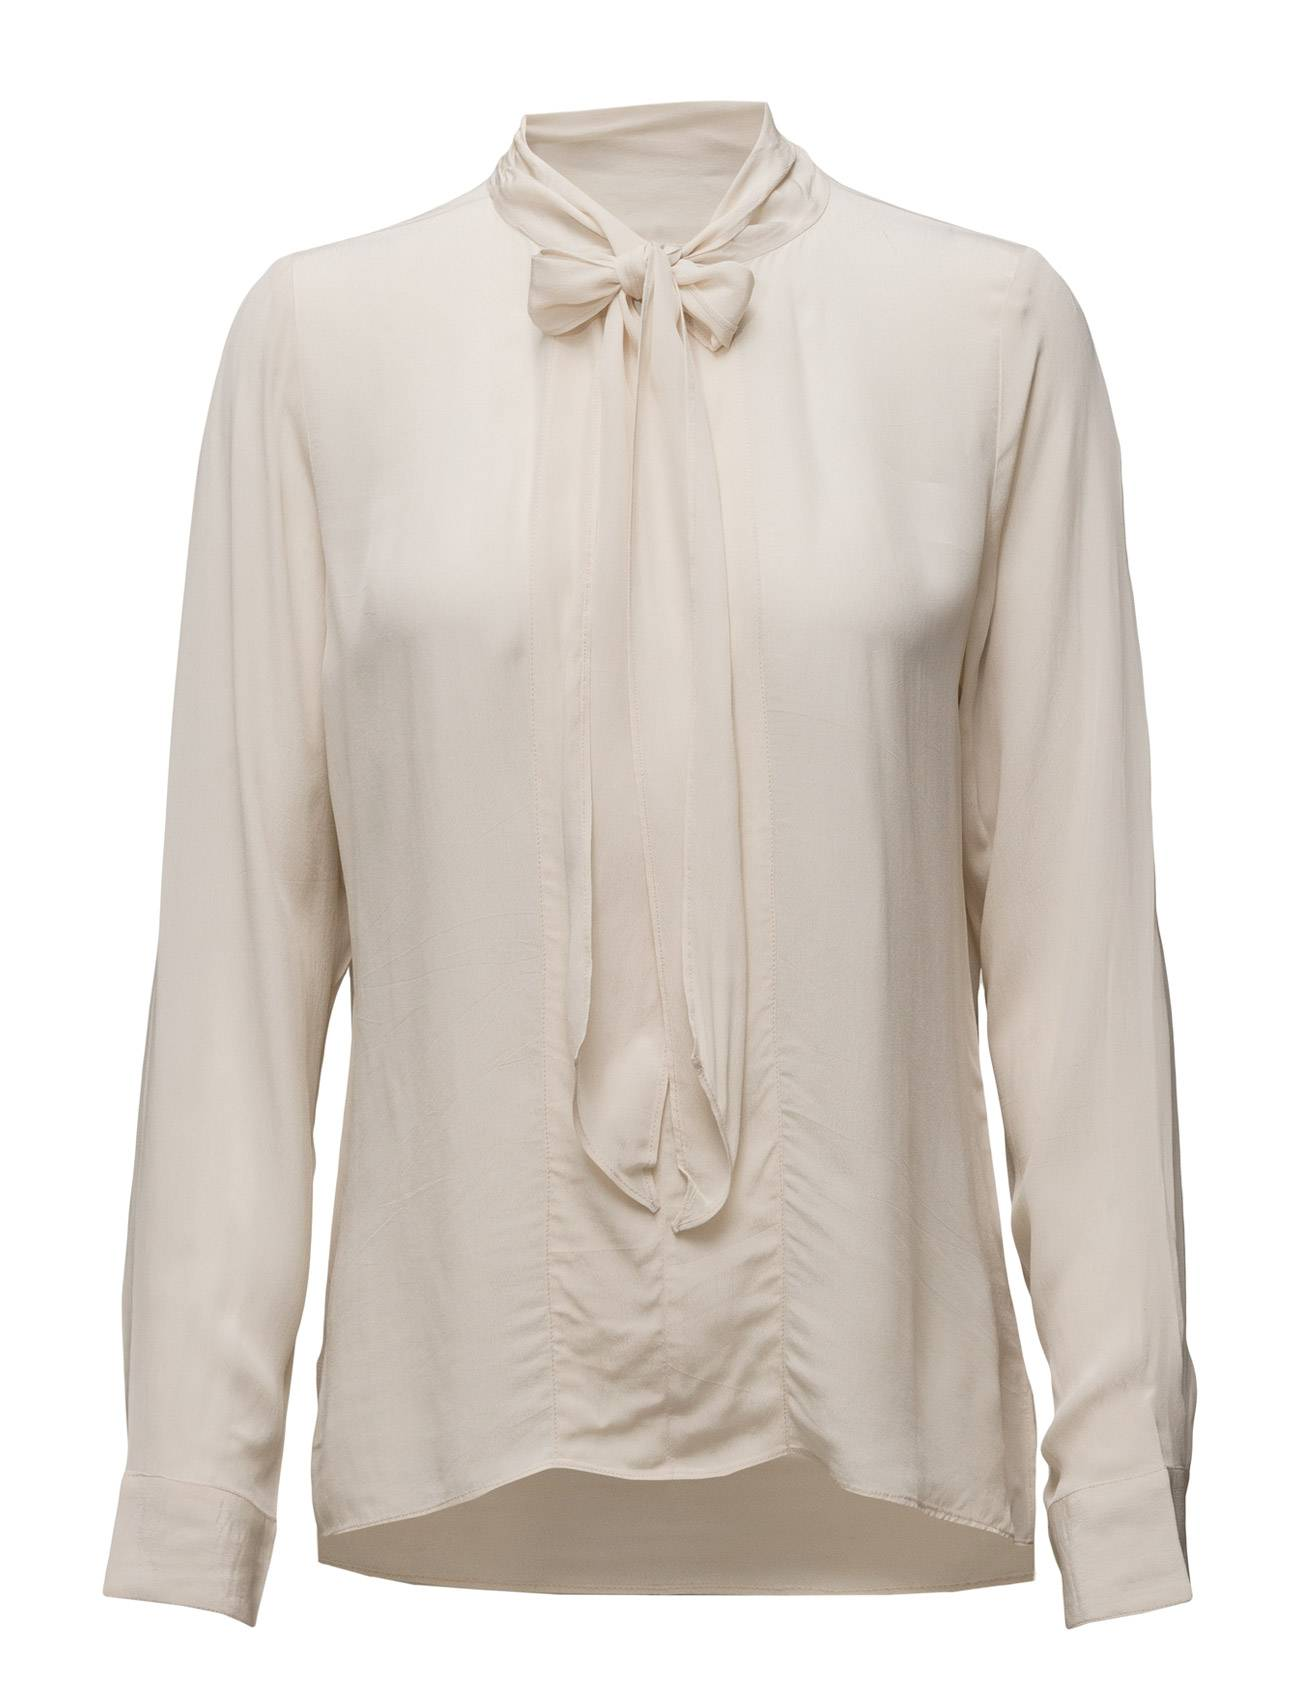 Ilse Jacobsen Womens Shirt